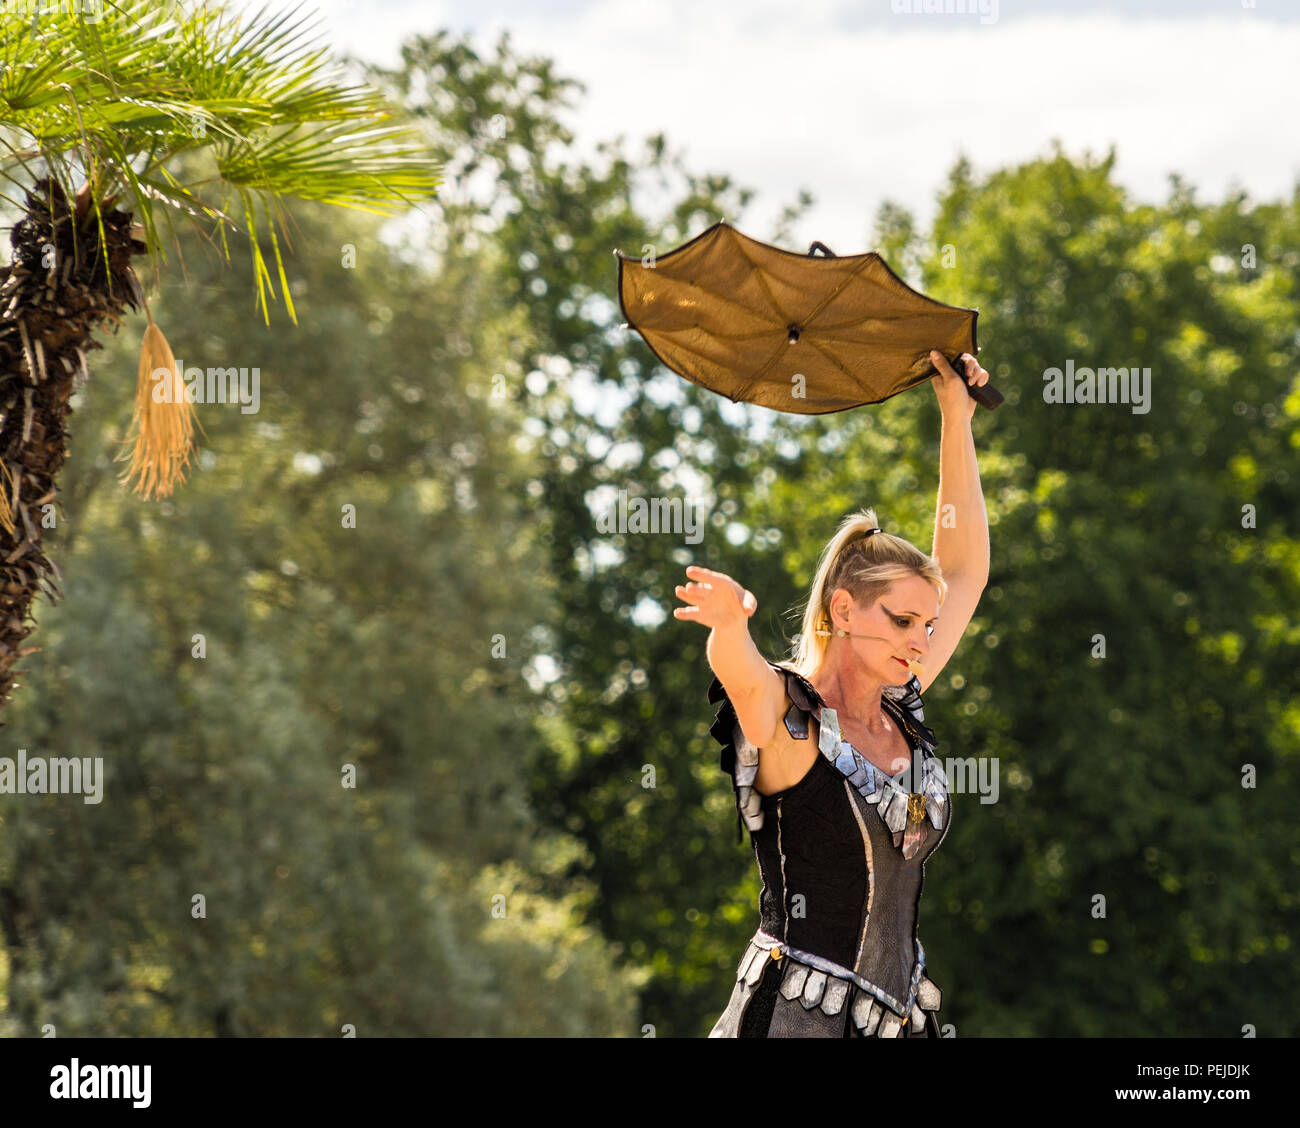 Hanover, Lower Saxony, July 5, 2018: Tightrope walker in black dress with a yellow umbrella for balancing at the Maschsee Festival in Hanover. - Stock Image